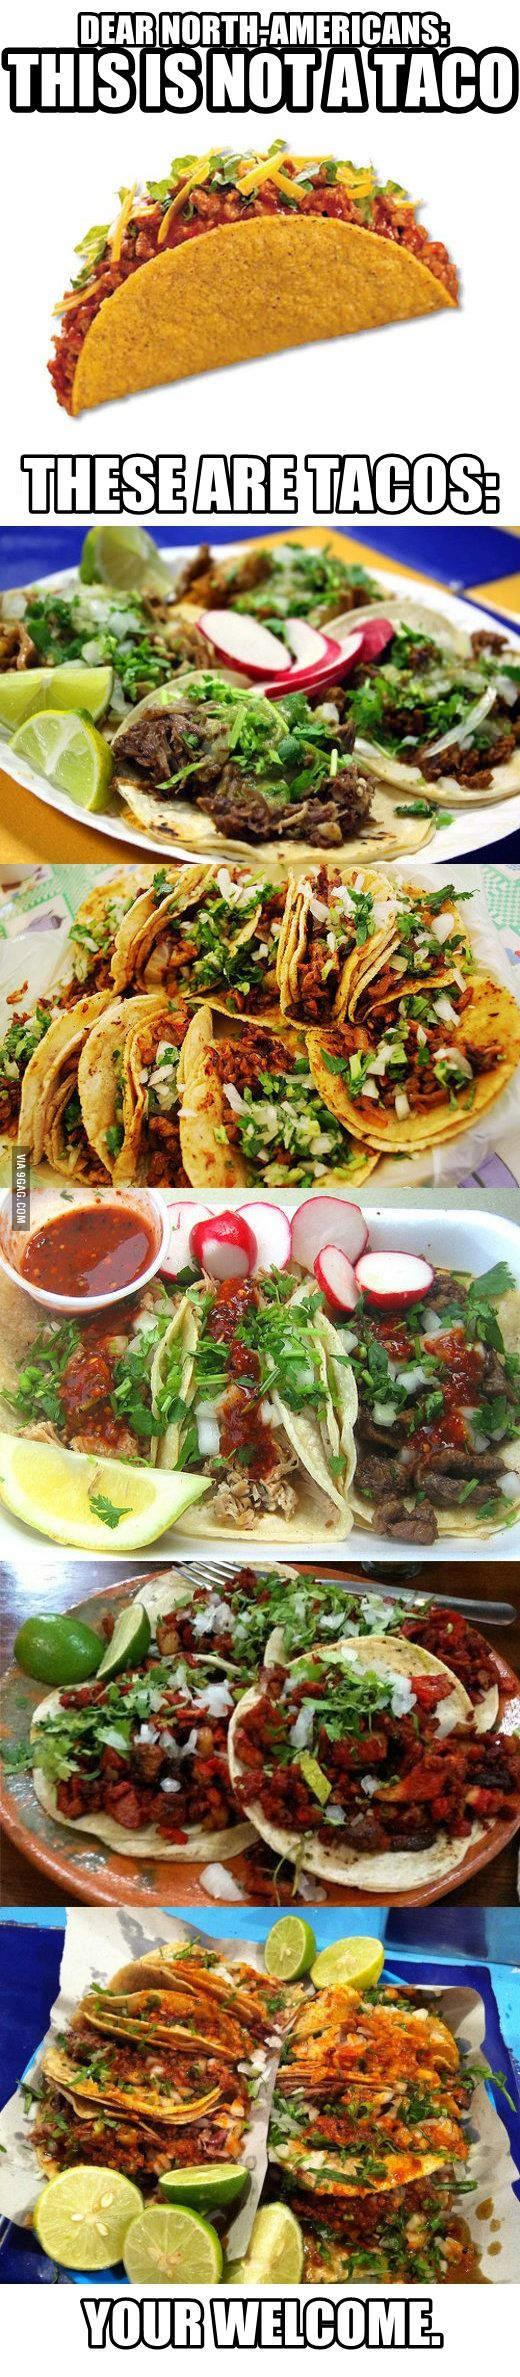 Authentic tacos!!!